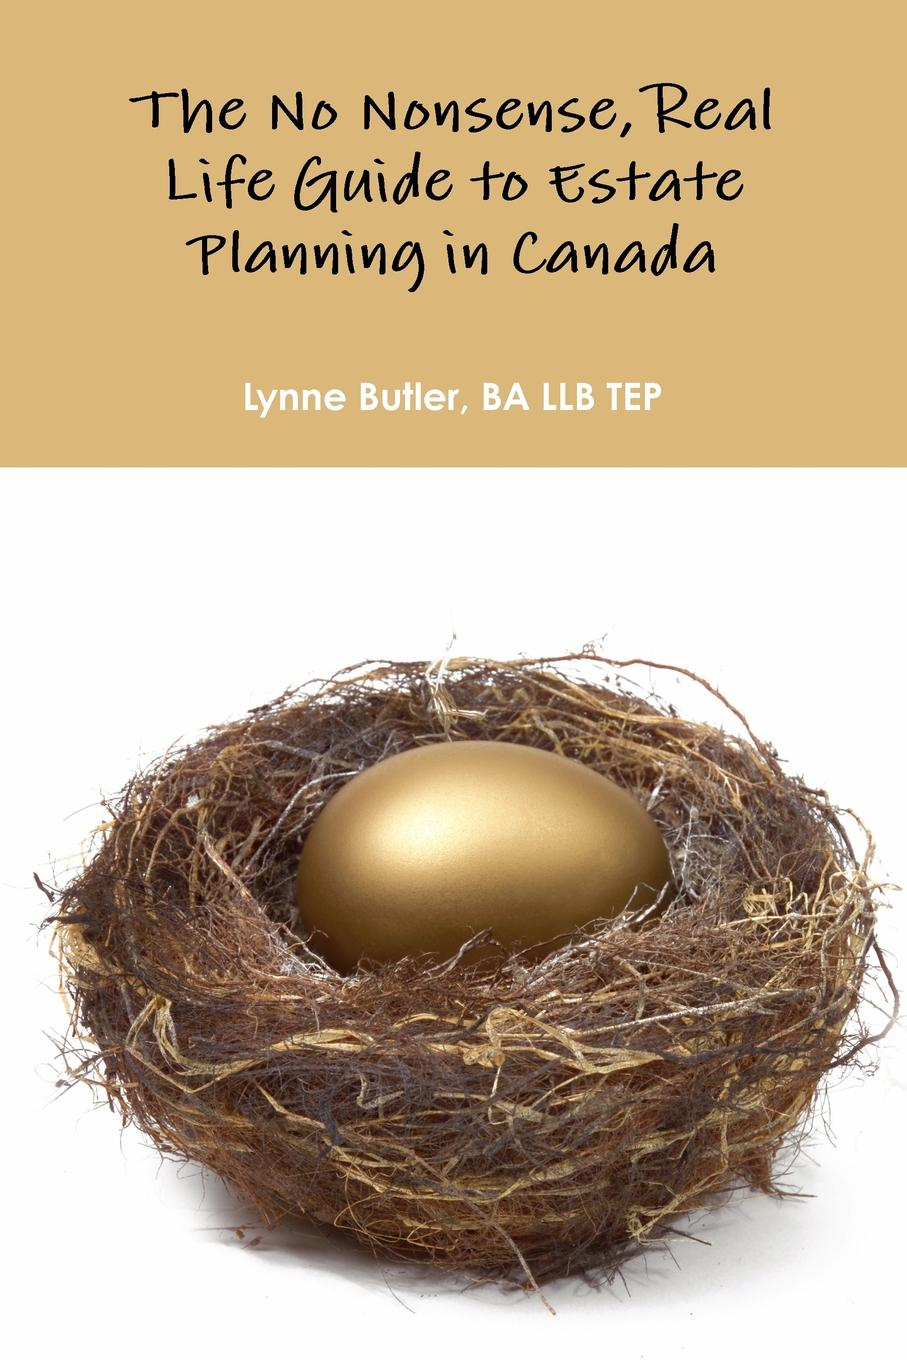 BA LLB TEP Lynne Butler No nonsense, real life guide to estate planning in Canada william streng p estate planning